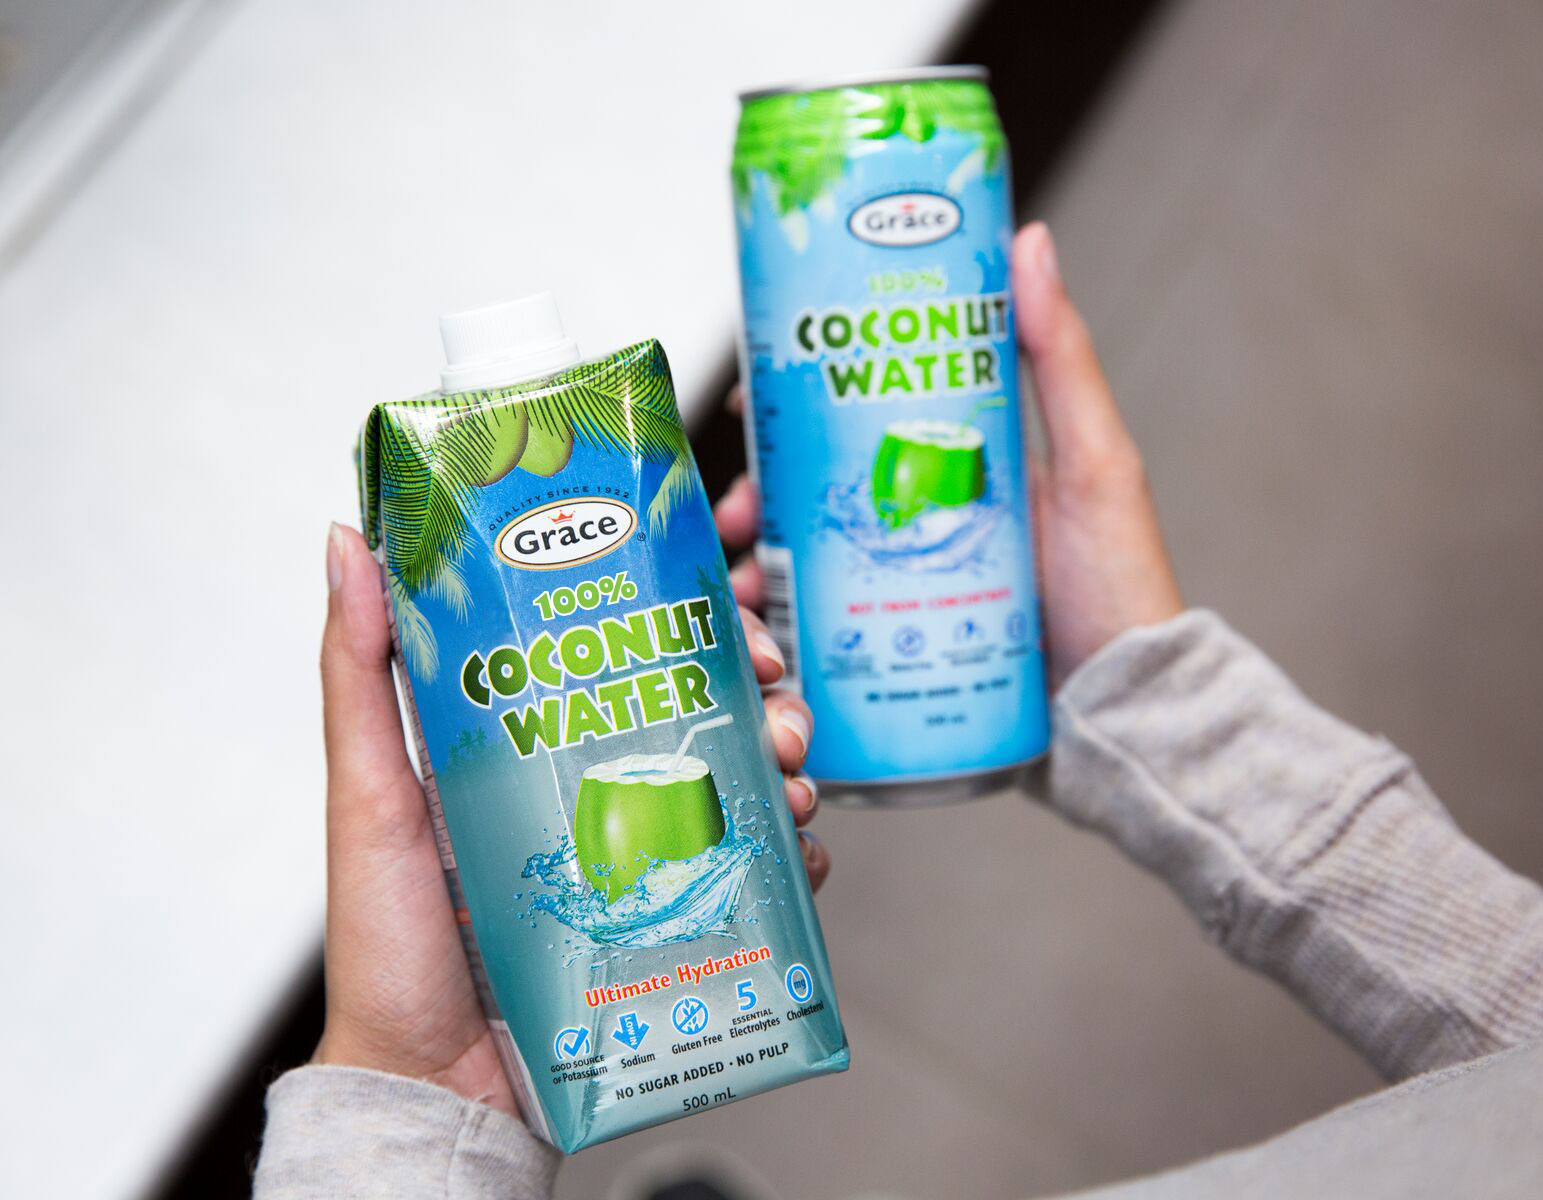 2 cans of coconut water